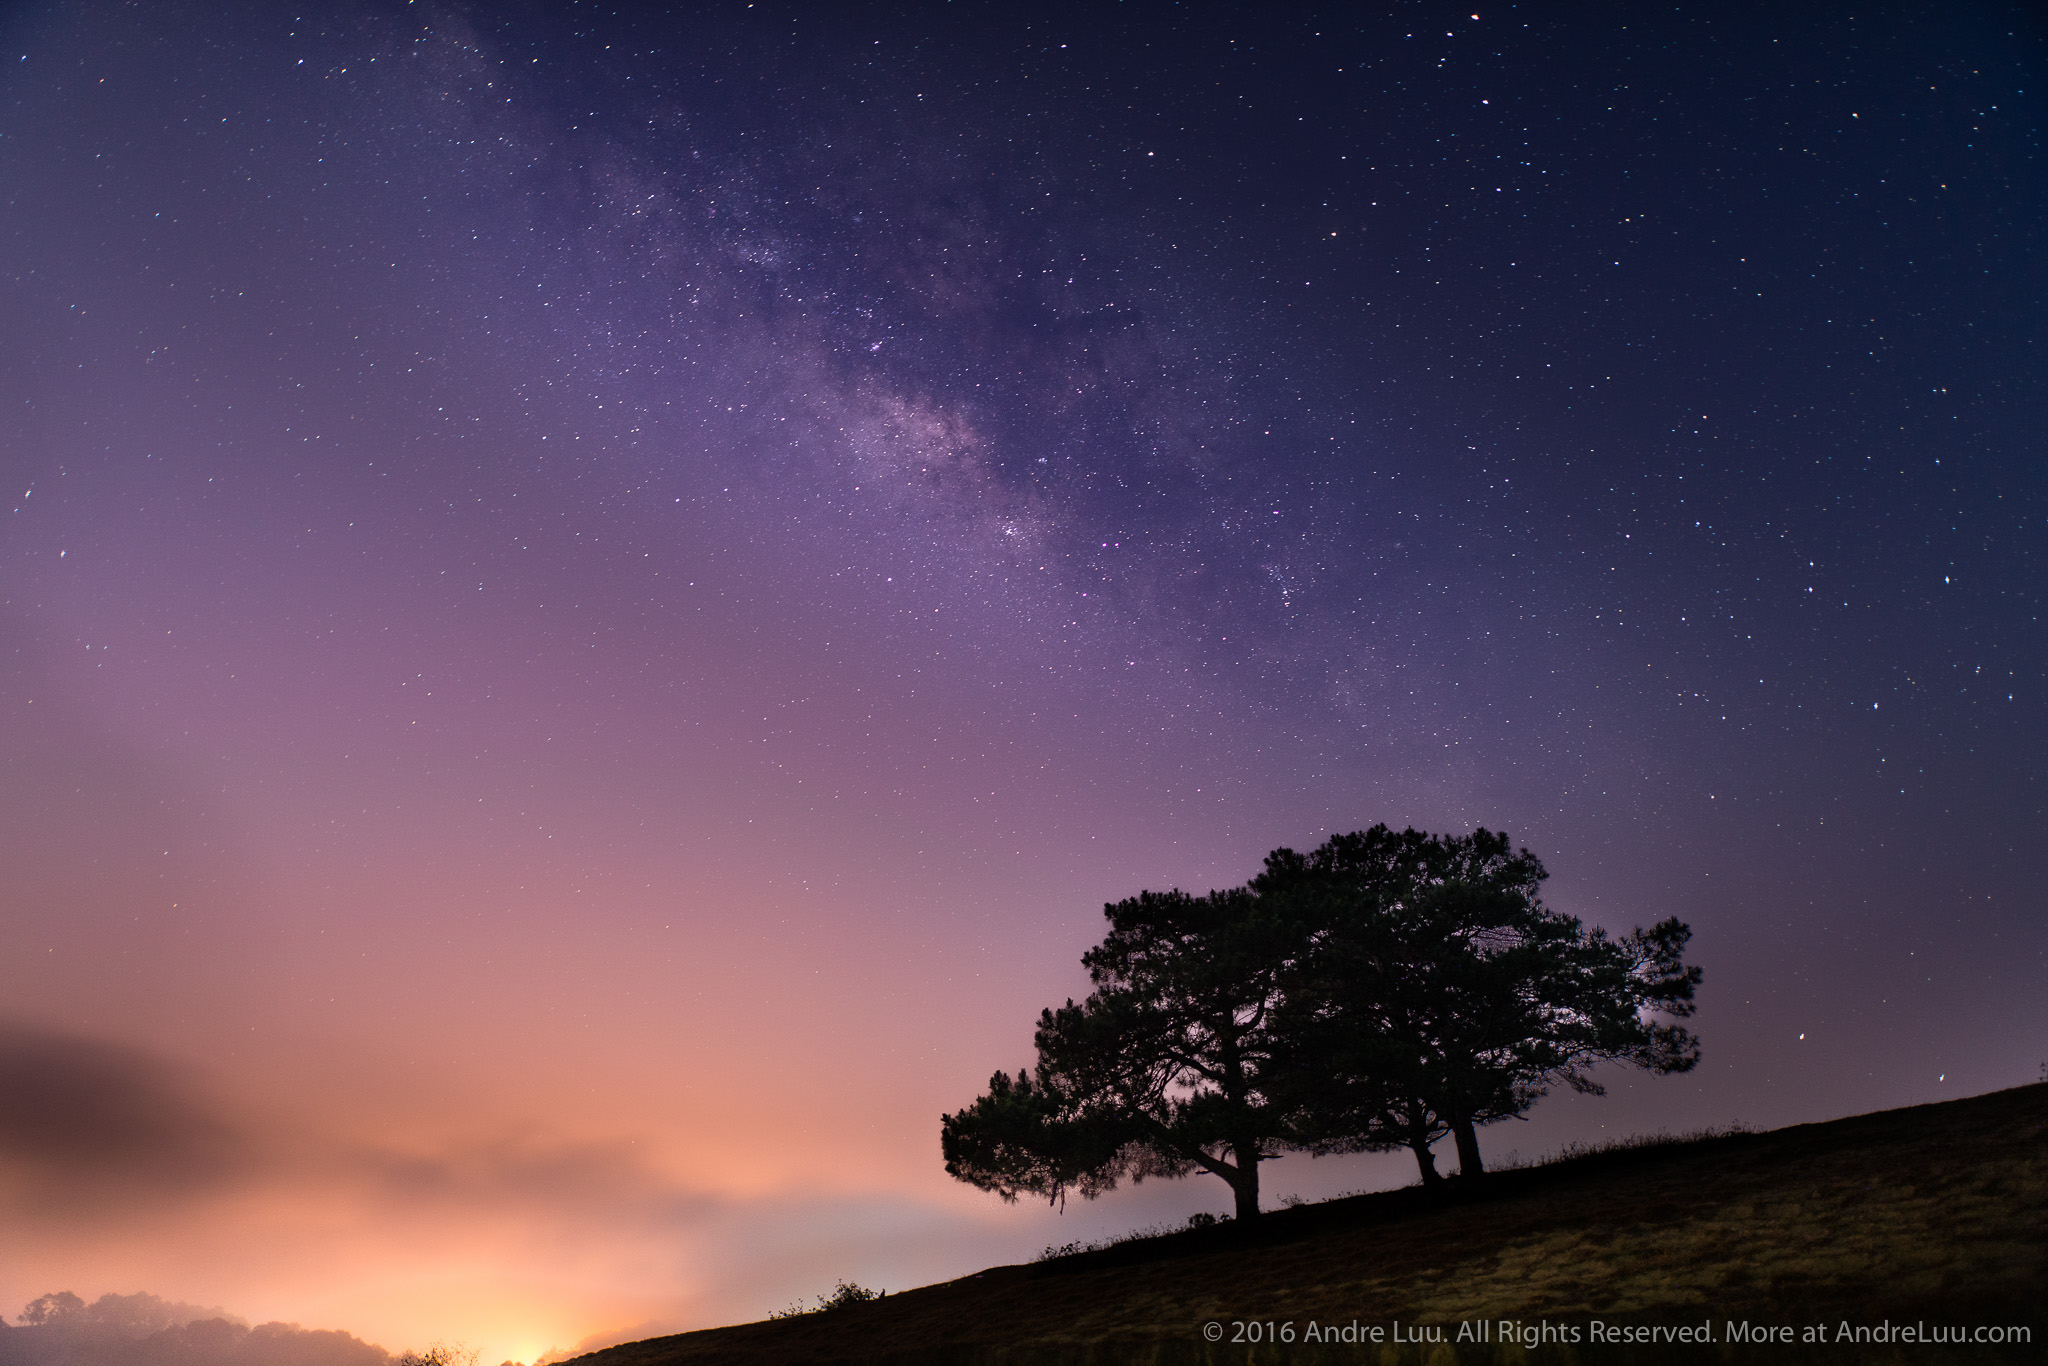 LƯỠNG DIỆN NGÂN HÀ (TWO SIDES OF THE MILKYWAY) 25s f/1.4 ISO